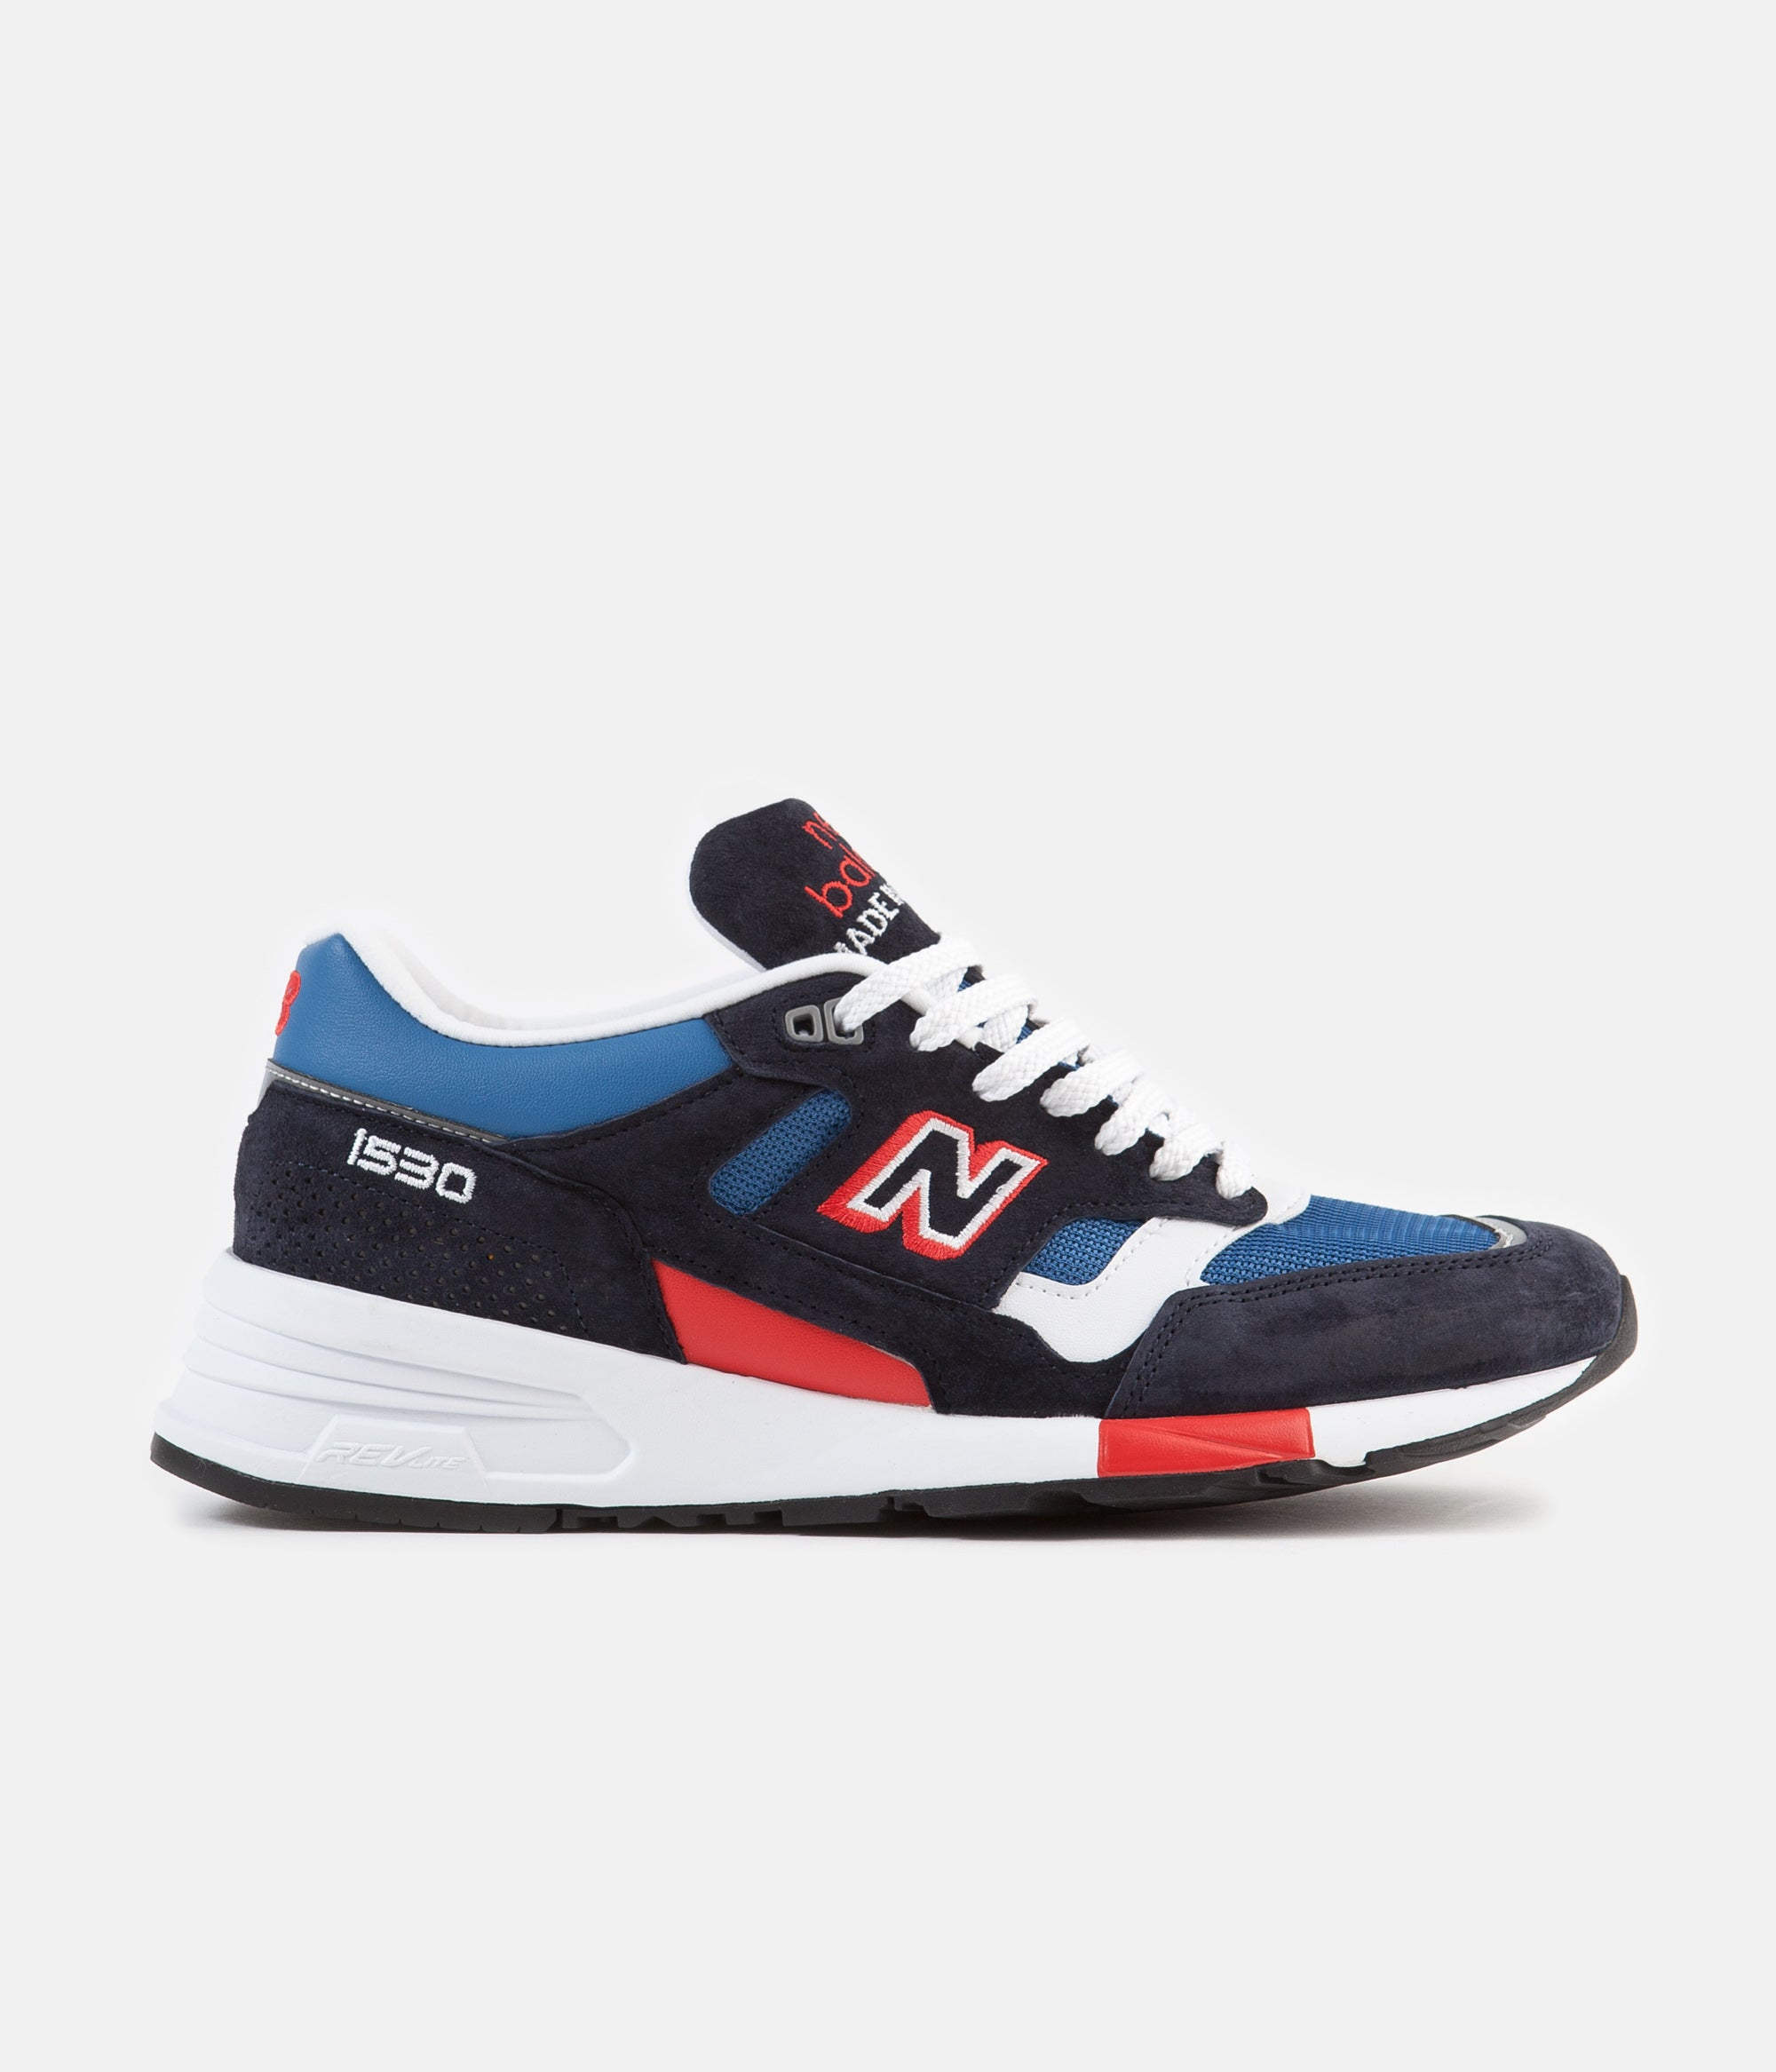 e3e5eac570db7 New Balance 1530 Made in UK Shoes - Navy / Blue / Red | Always in Colour